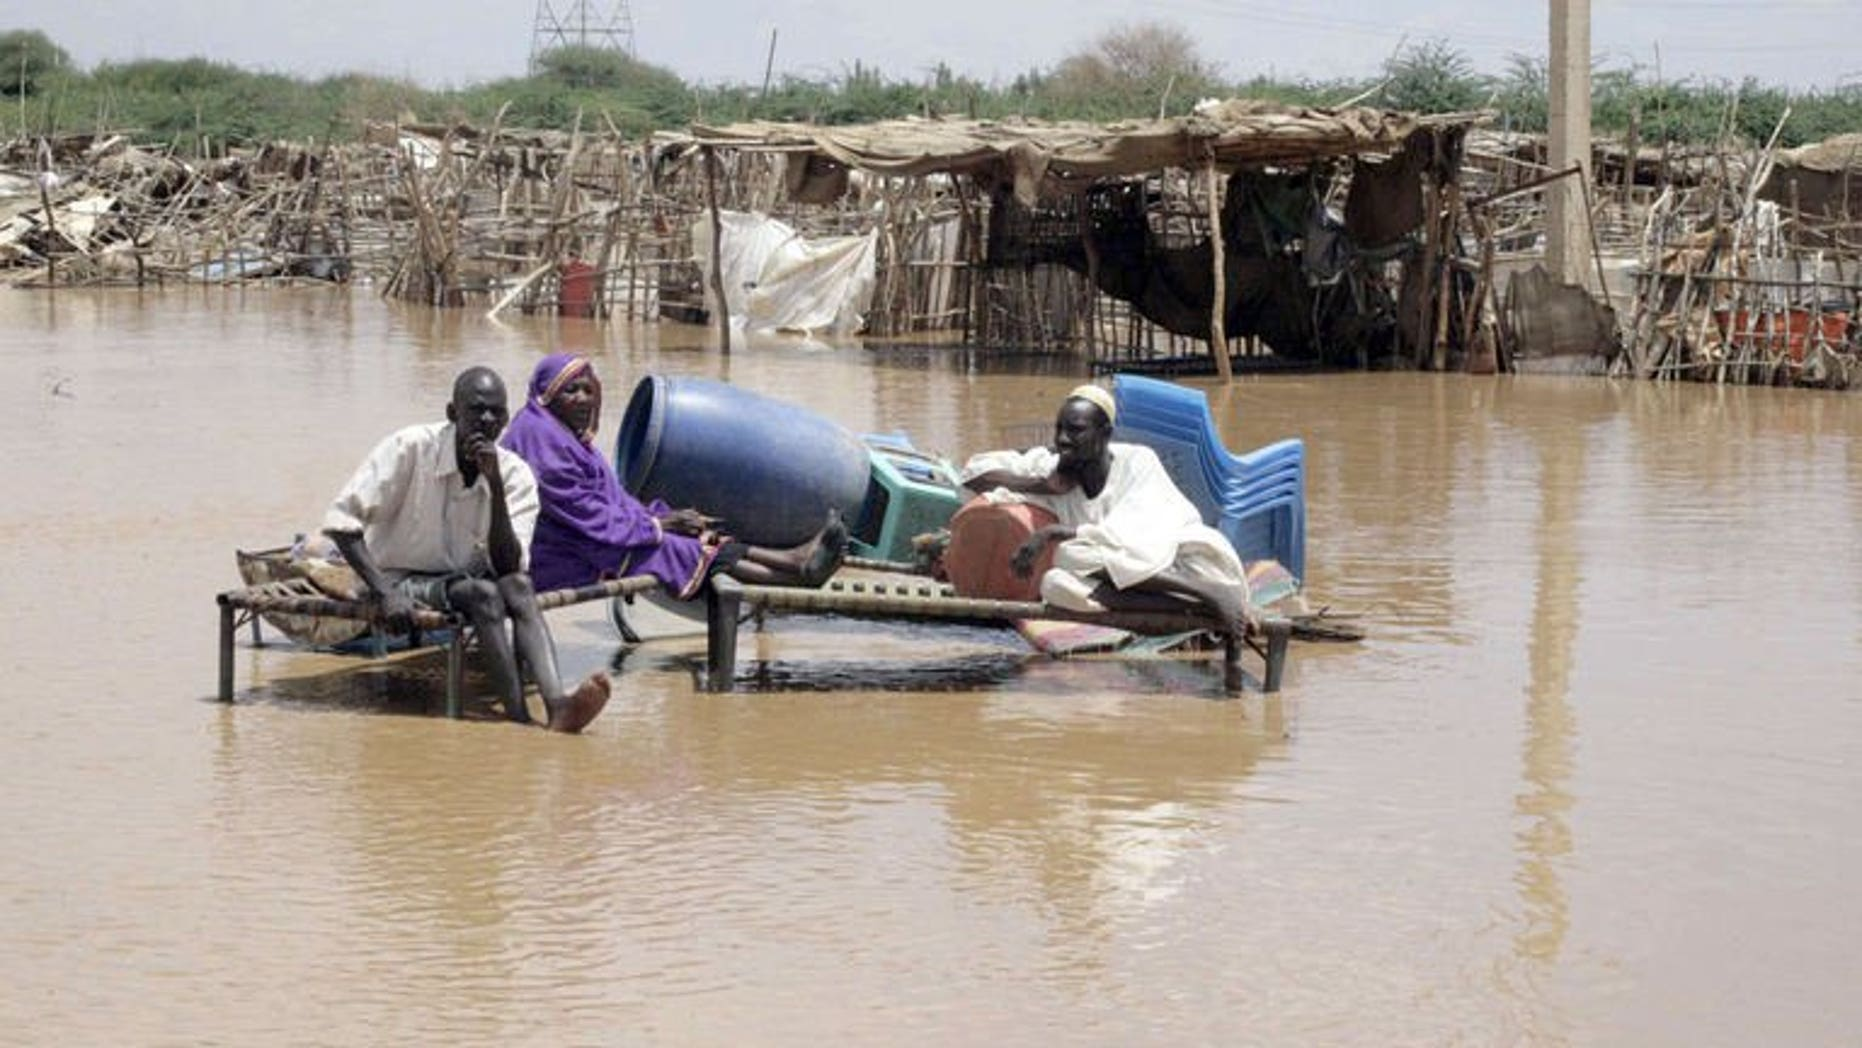 Sudanese men sit on raised sleeping beds with some of their belongings, as flood waters cover a street on August 3, 2013, in Khartoum. Following heavy rains the past few days, there has been flooding throughout the Khartoum area, where drainage is poor.